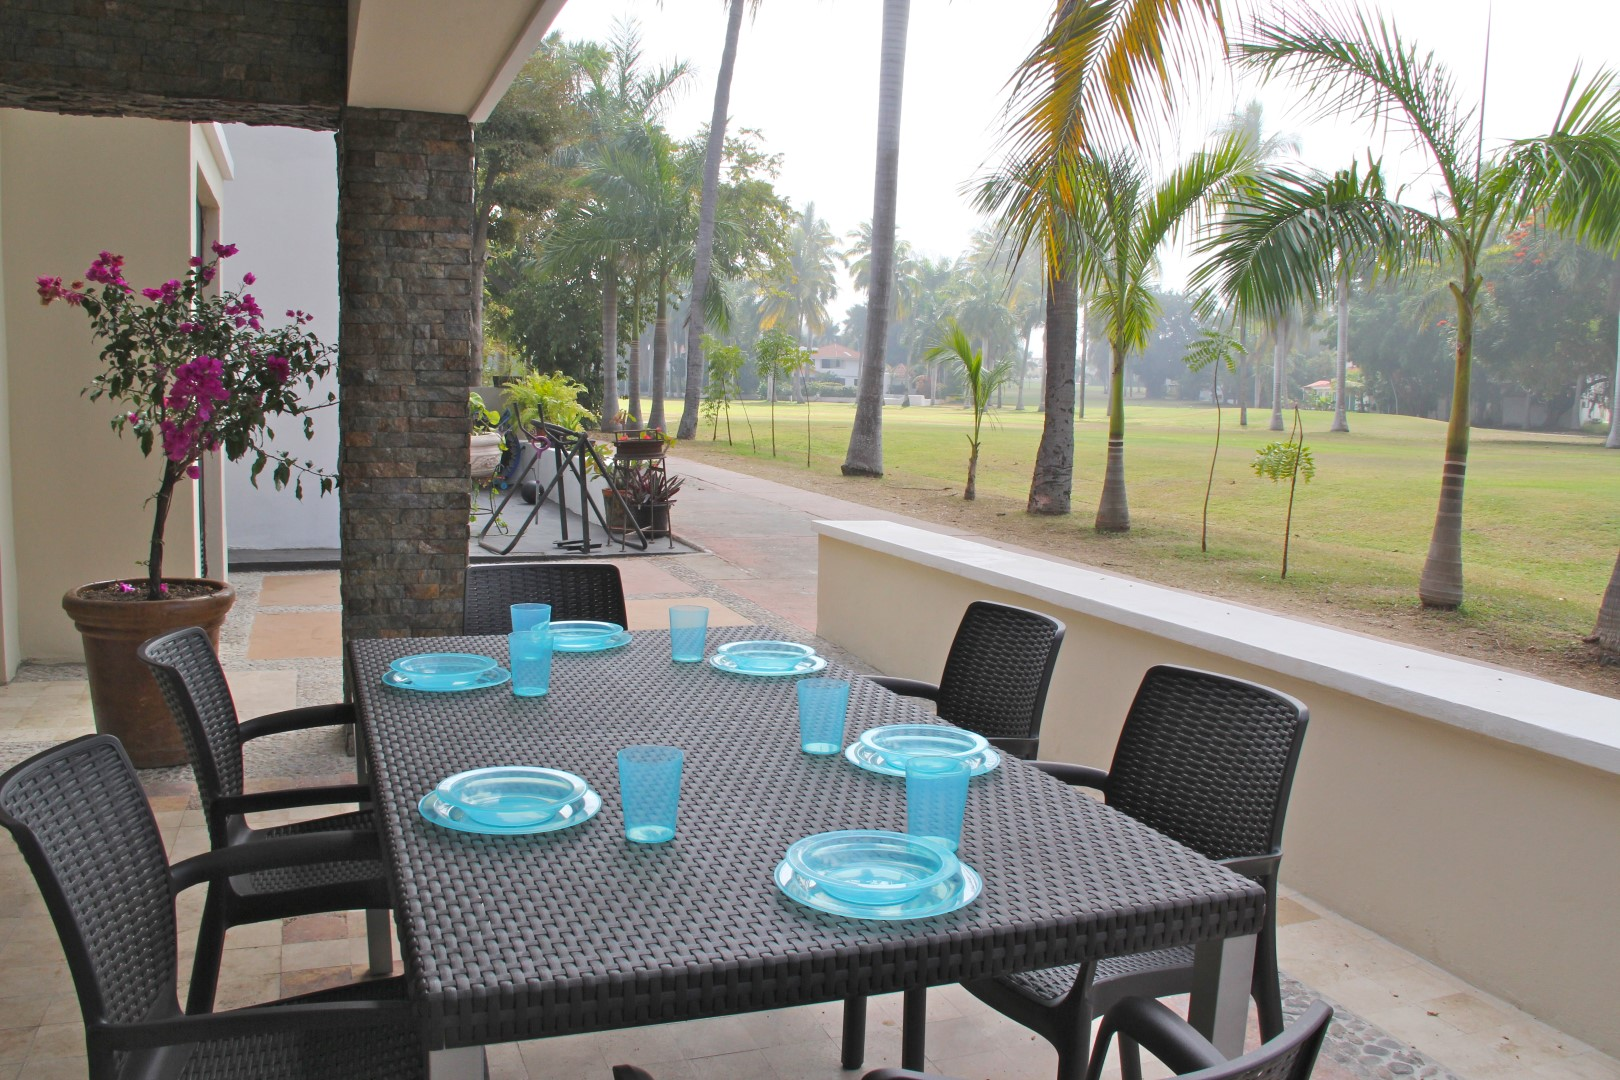 Outdoor dining for 6 people